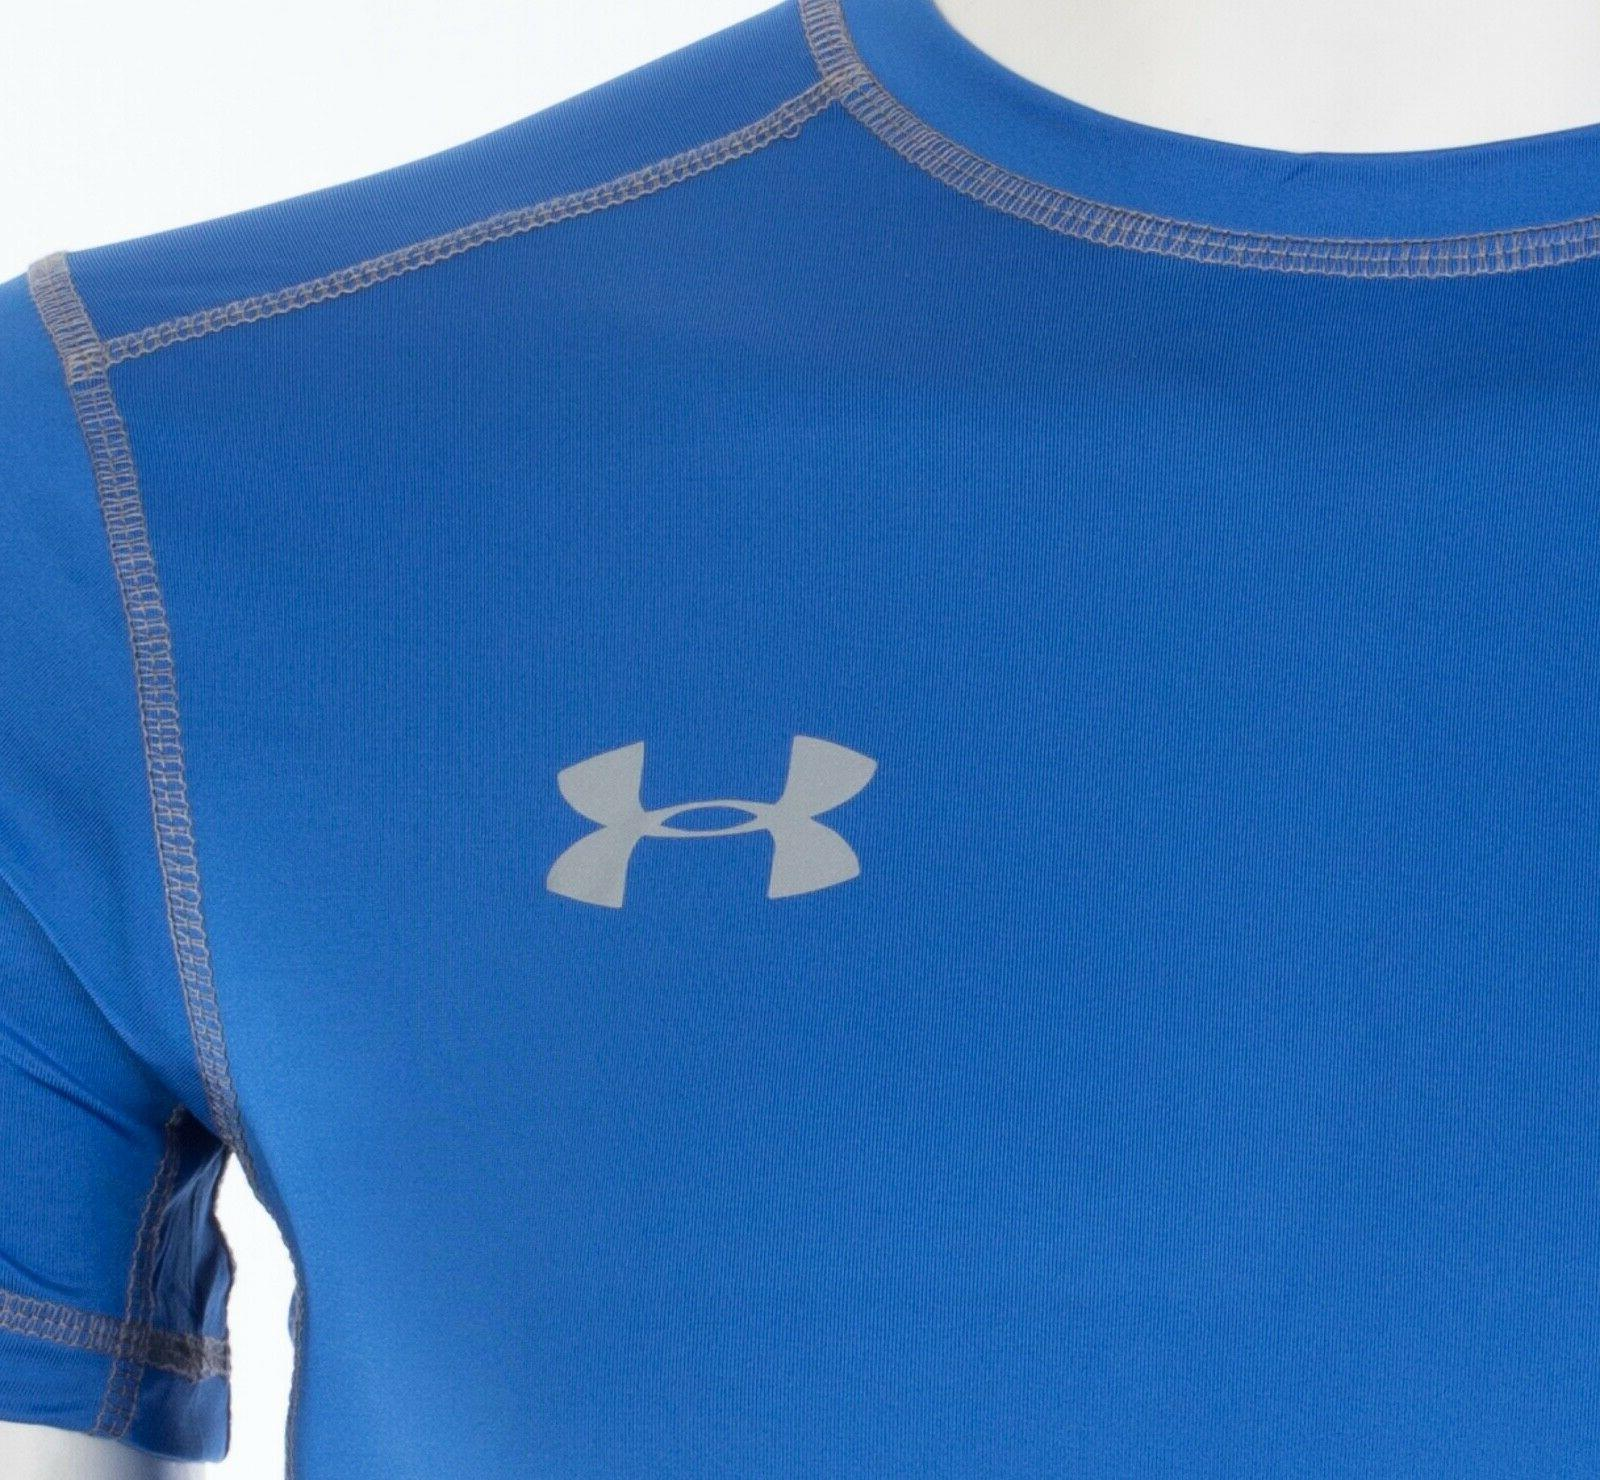 UNDER ARMOUR Mens Athletic T-Shirt BLUE Semi $40